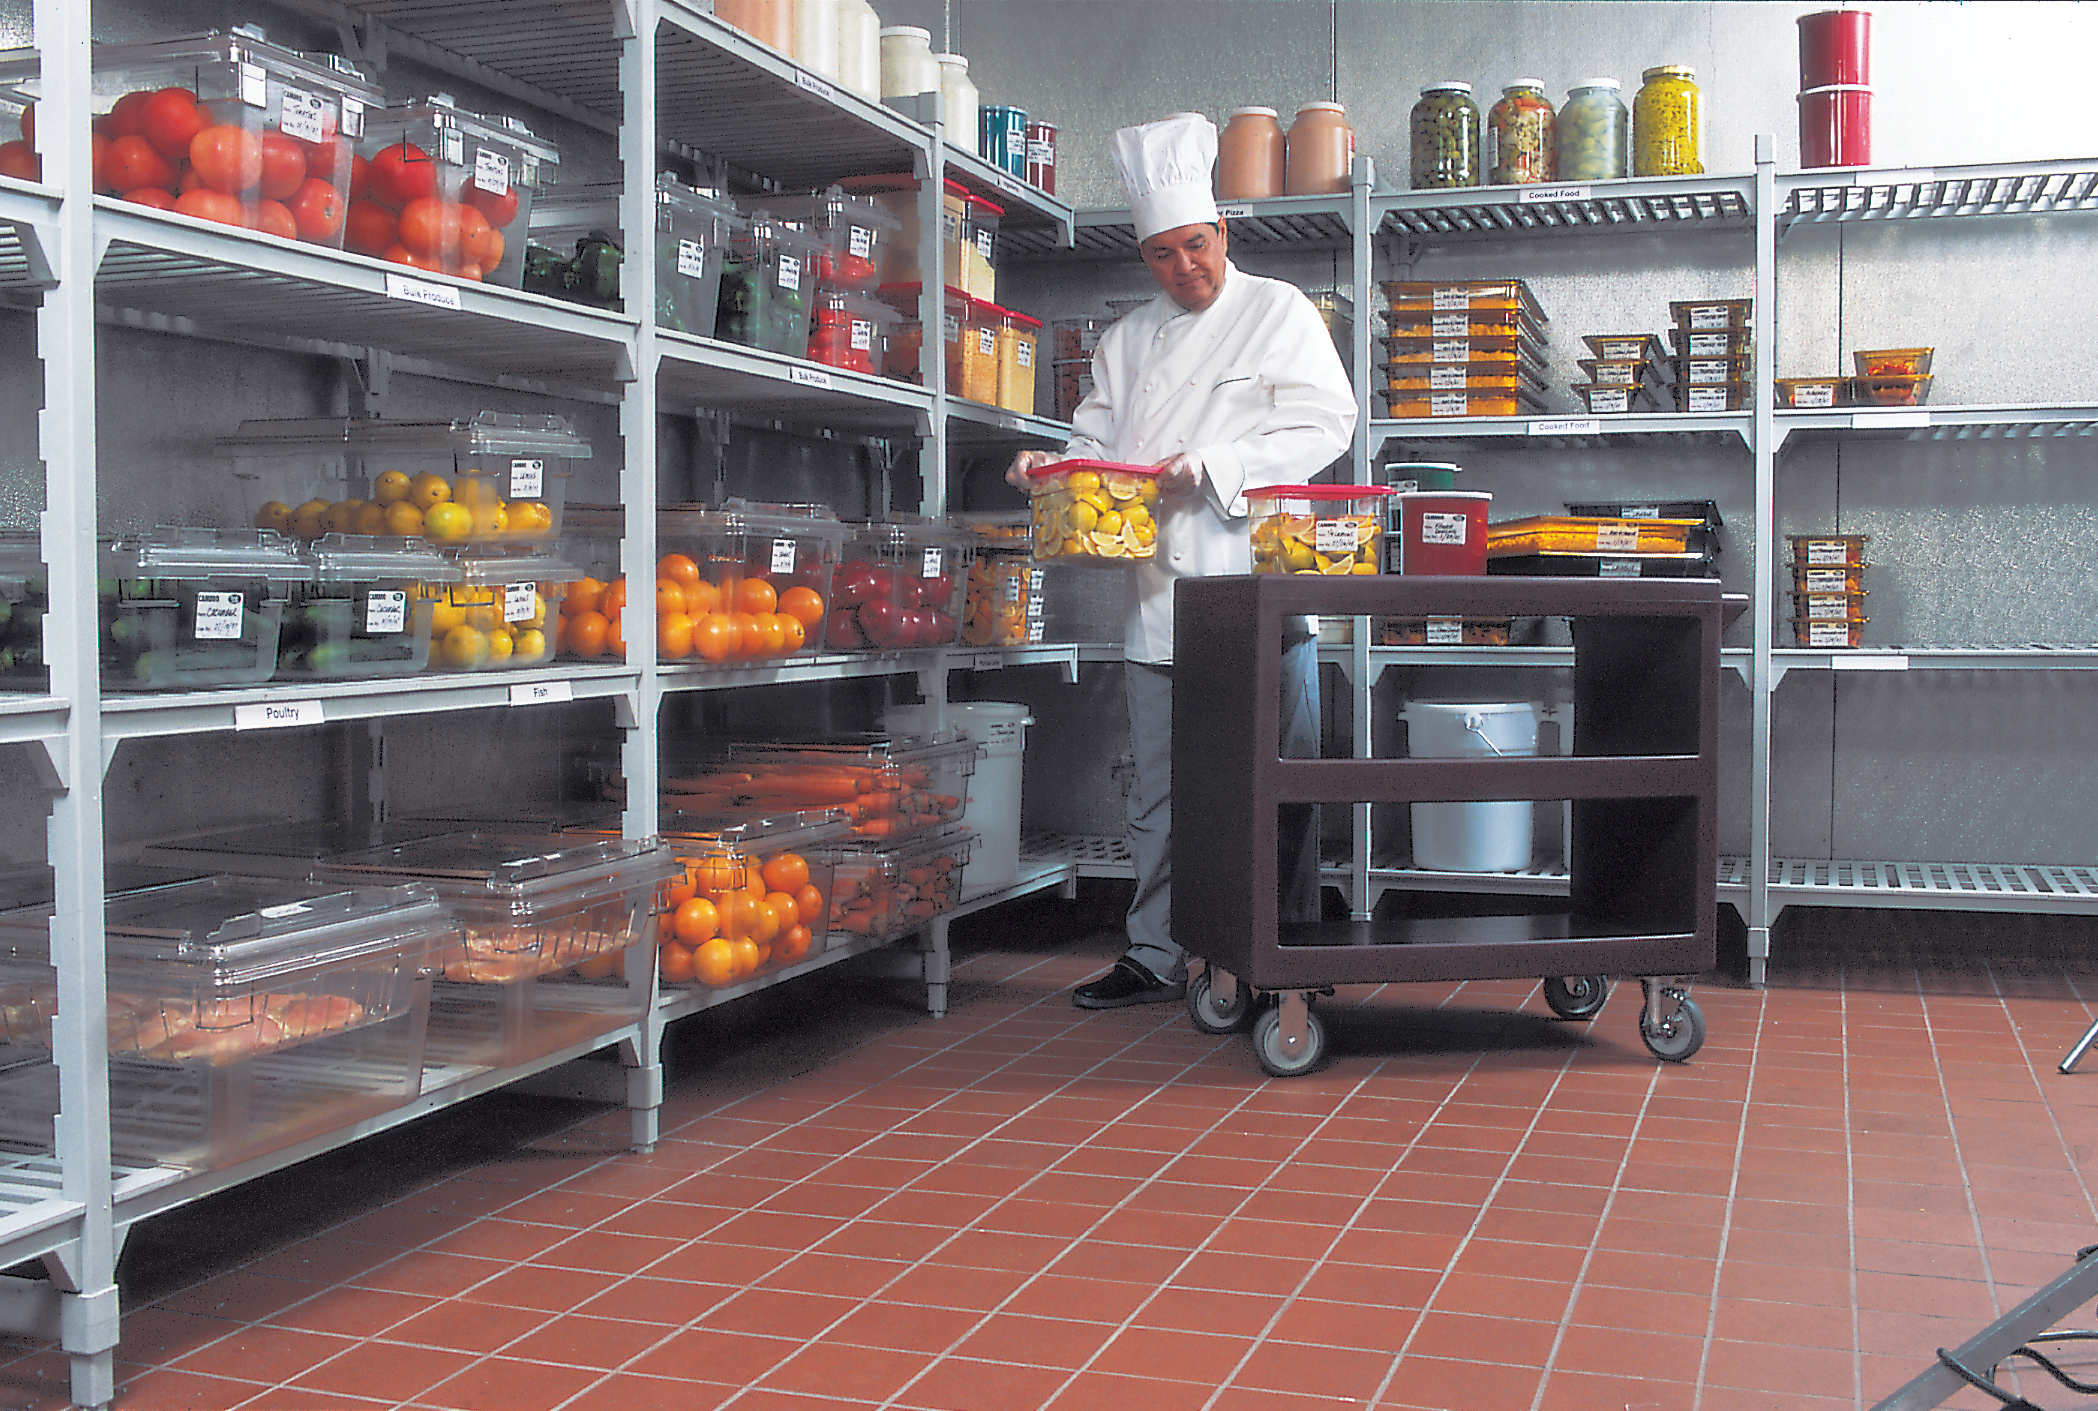 Restaurant Kitchen Shelving tips for organizing a walk-in freezer or refrigerator - the